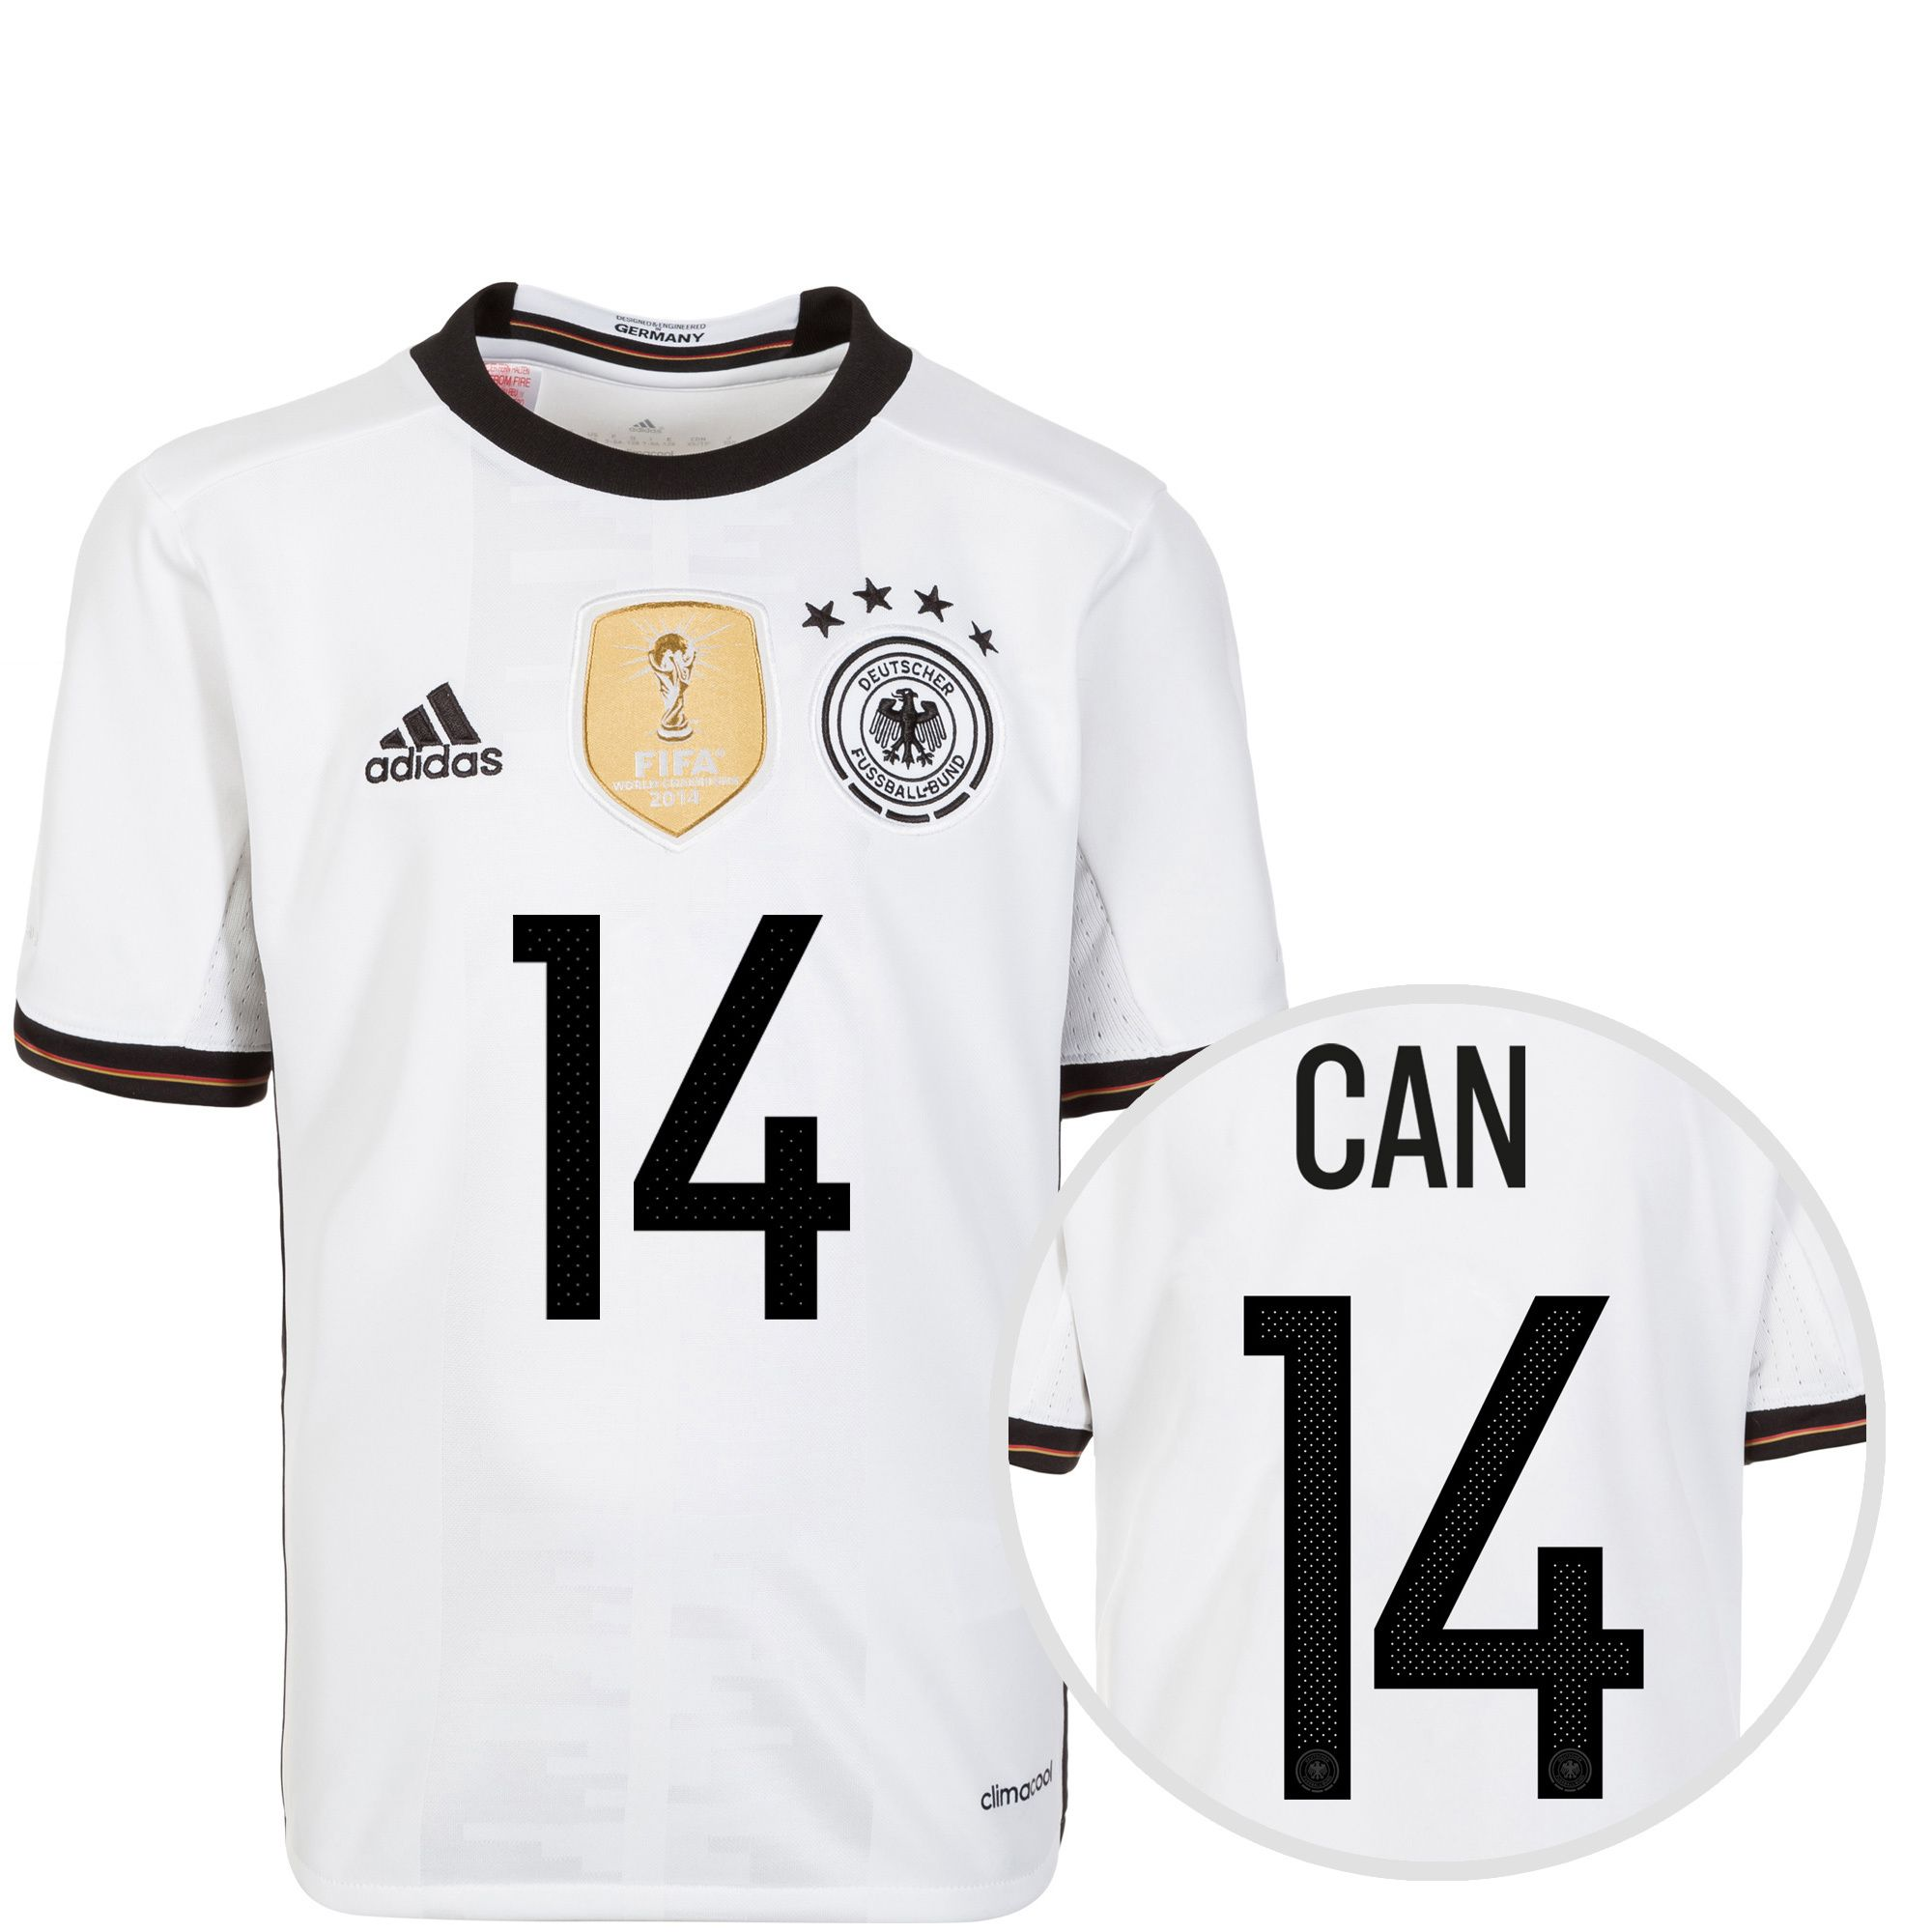 ADIDAS PERFORMANCE adidas Performance DFB Trikot Home Can EM 2016 Kinder